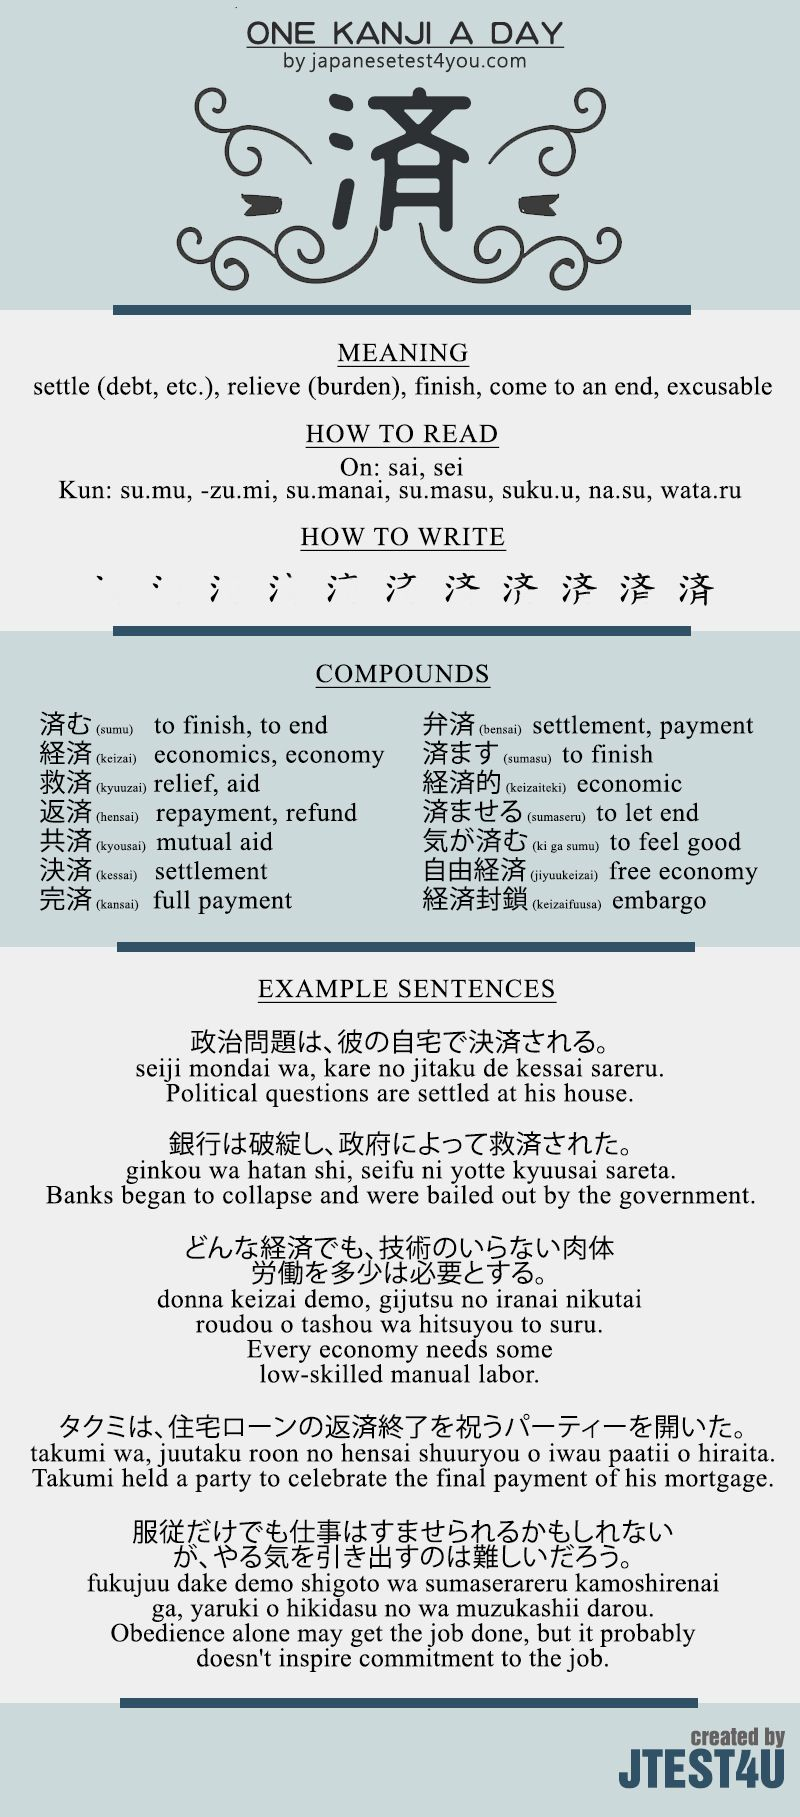 Learn One Kanji A Day With Infographic 済 Sai Learn Japanese